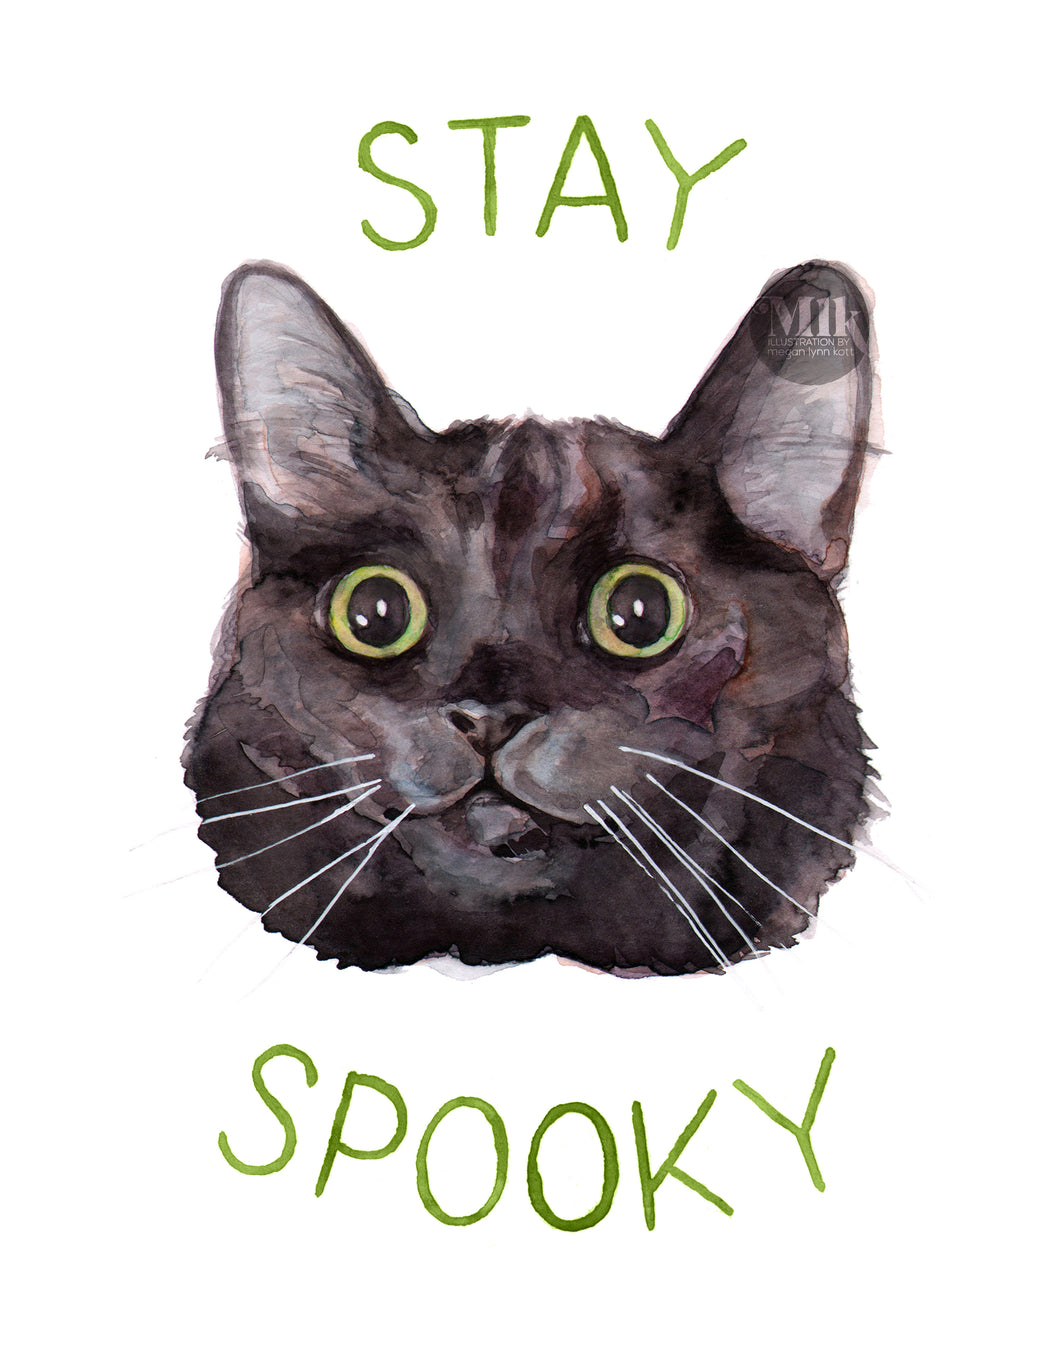 Stay Spooky - 11x14